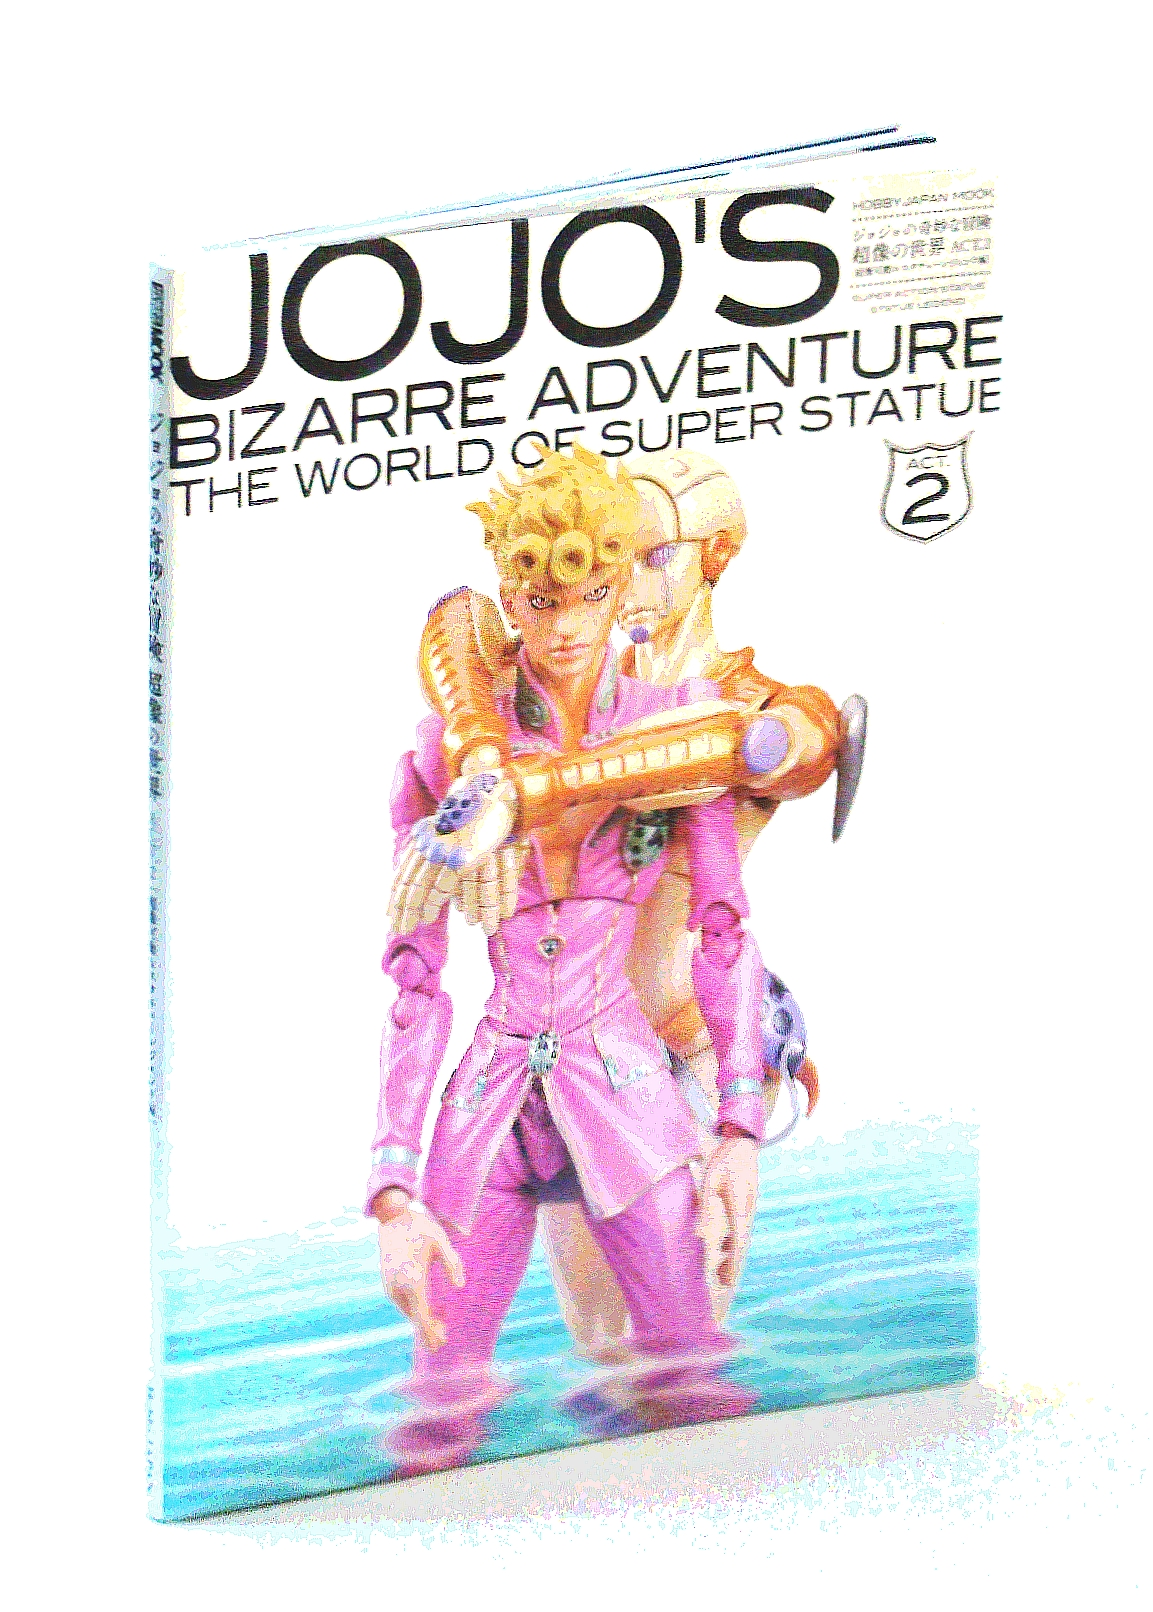 JoJo's Bizarre Adventure ~ The World of Super Statue ACT.2 Super Action Statue & Statue Legend Guide Book ~ (Hobby Japan Mook 511) [Japanese Edition] [JE]